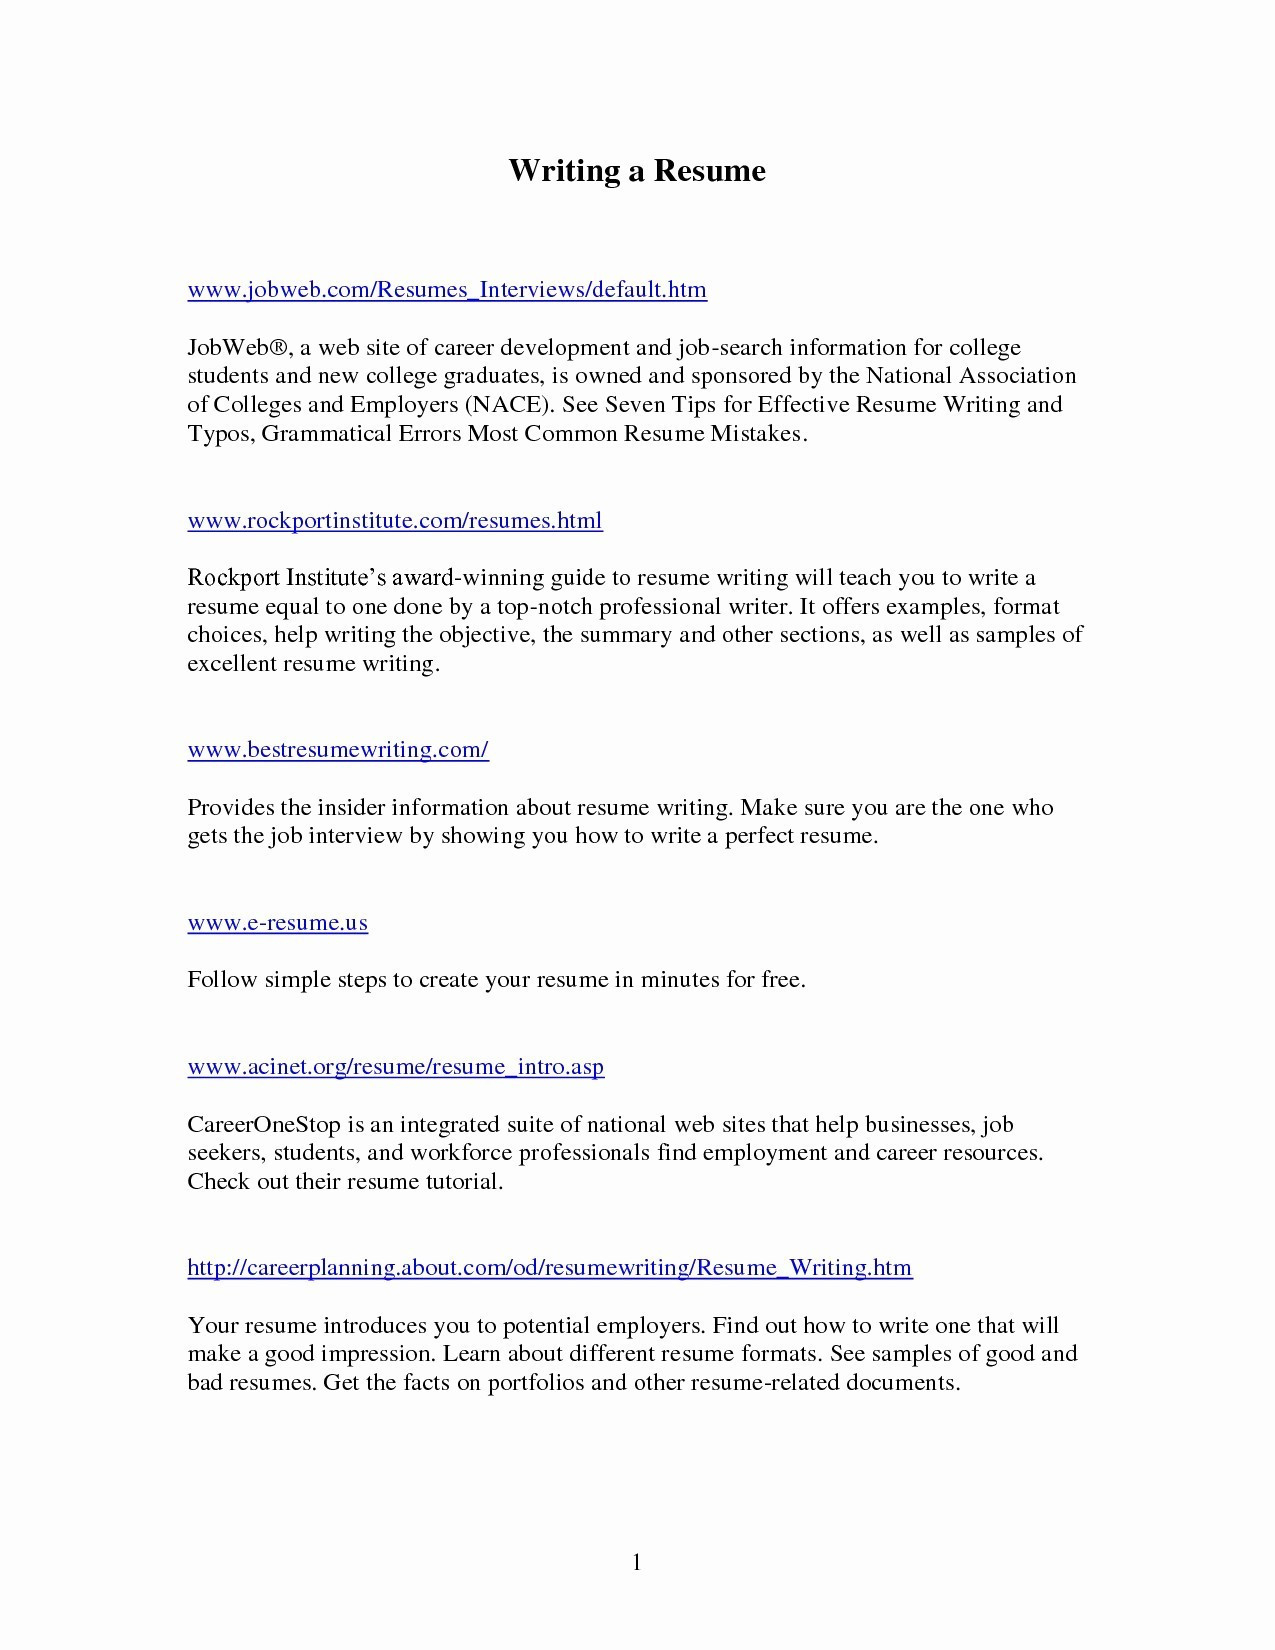 Resume Help Online - Beautiful Line Cv New Resume format Professional Resume Resume